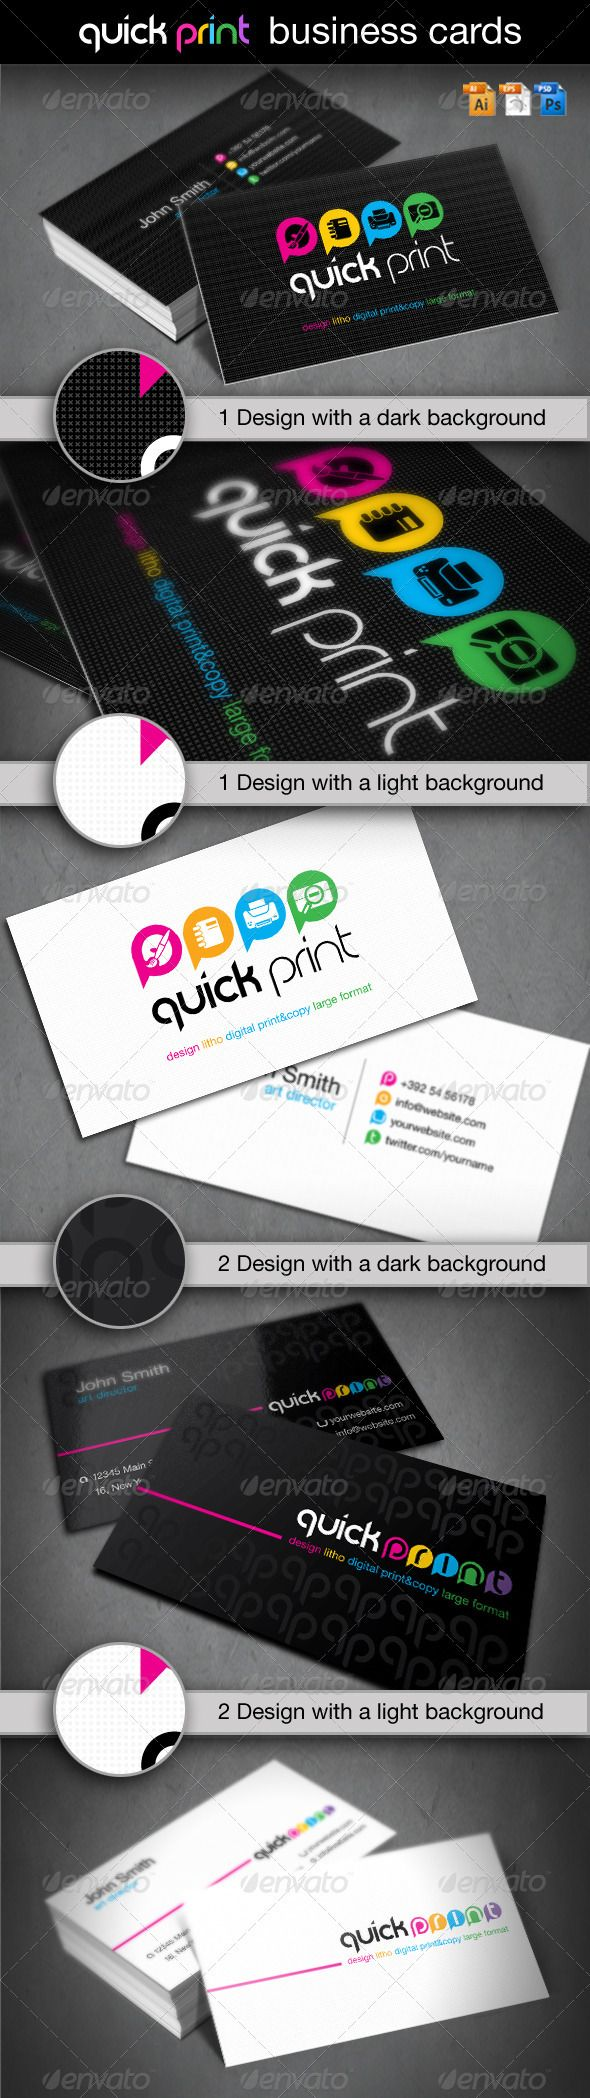 Attractive Where To Get Business Cards Fast Image Business Card